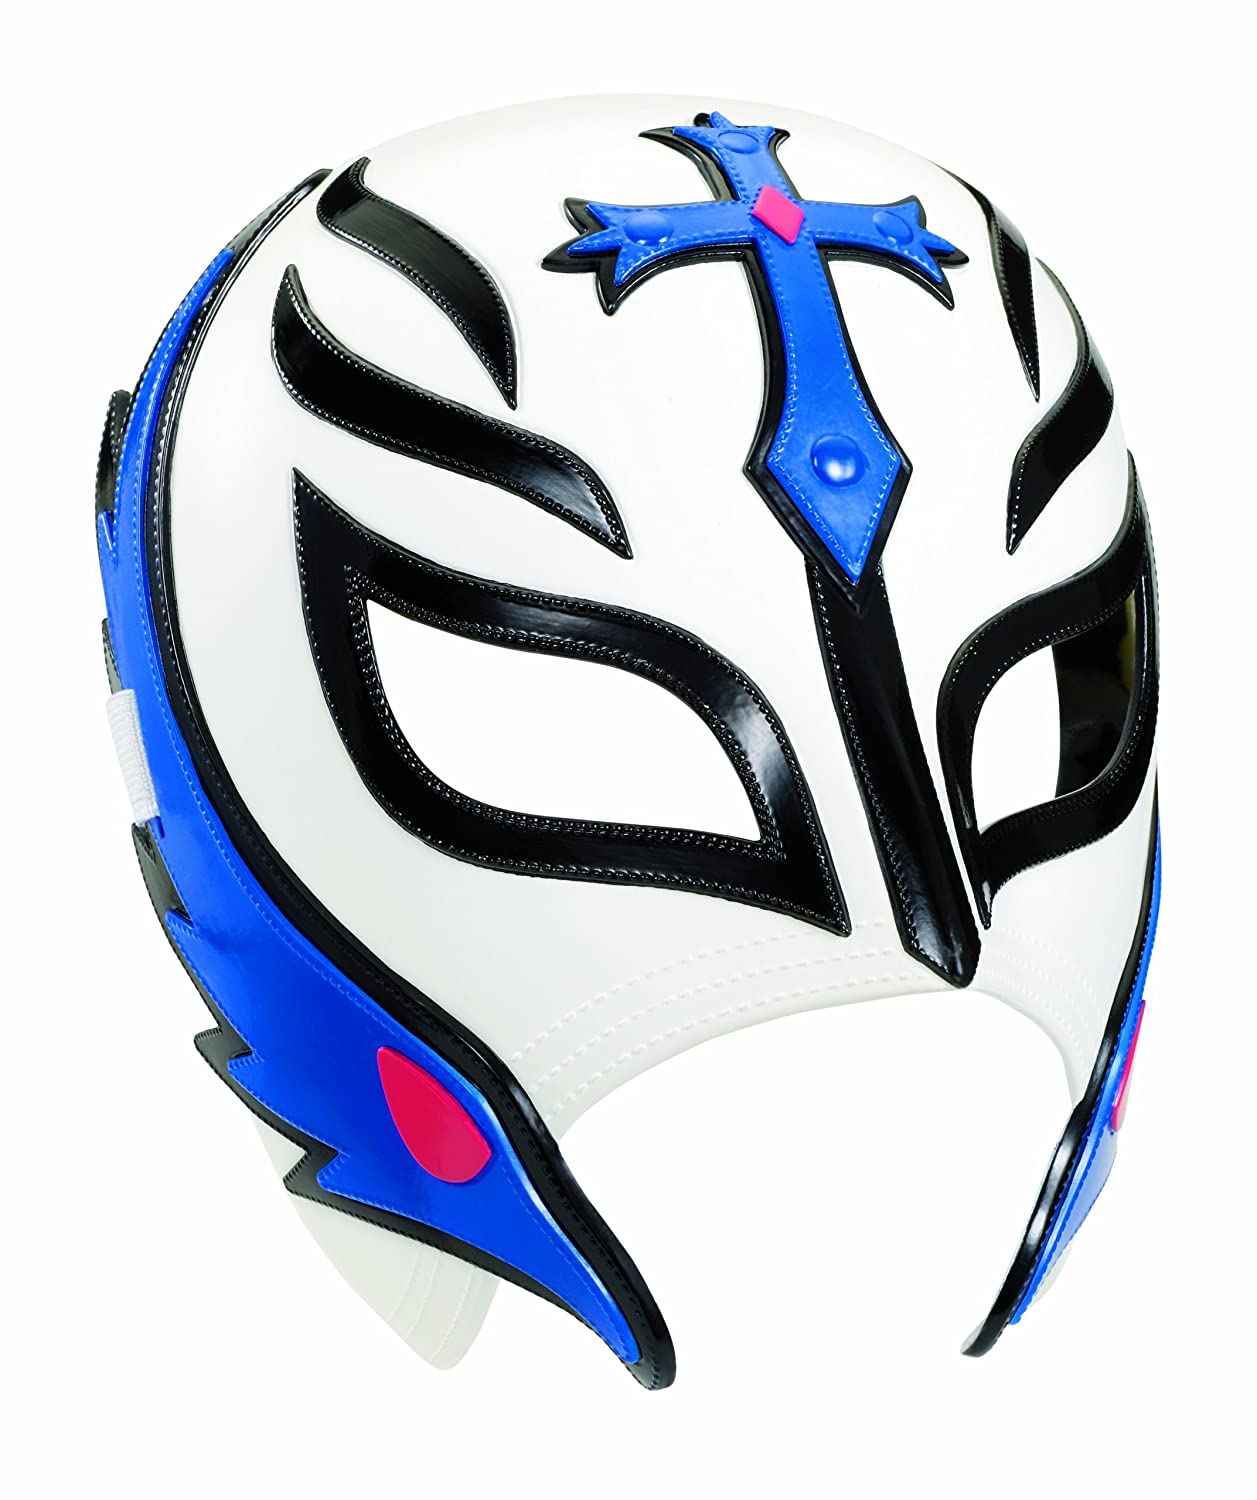 Wwe coloring pages of rey mysterio mask rey mysterio coloring pages - Wwe Coloring Pages Of Rey Mysterio Mask Rey Mysterio Coloring Pages 38